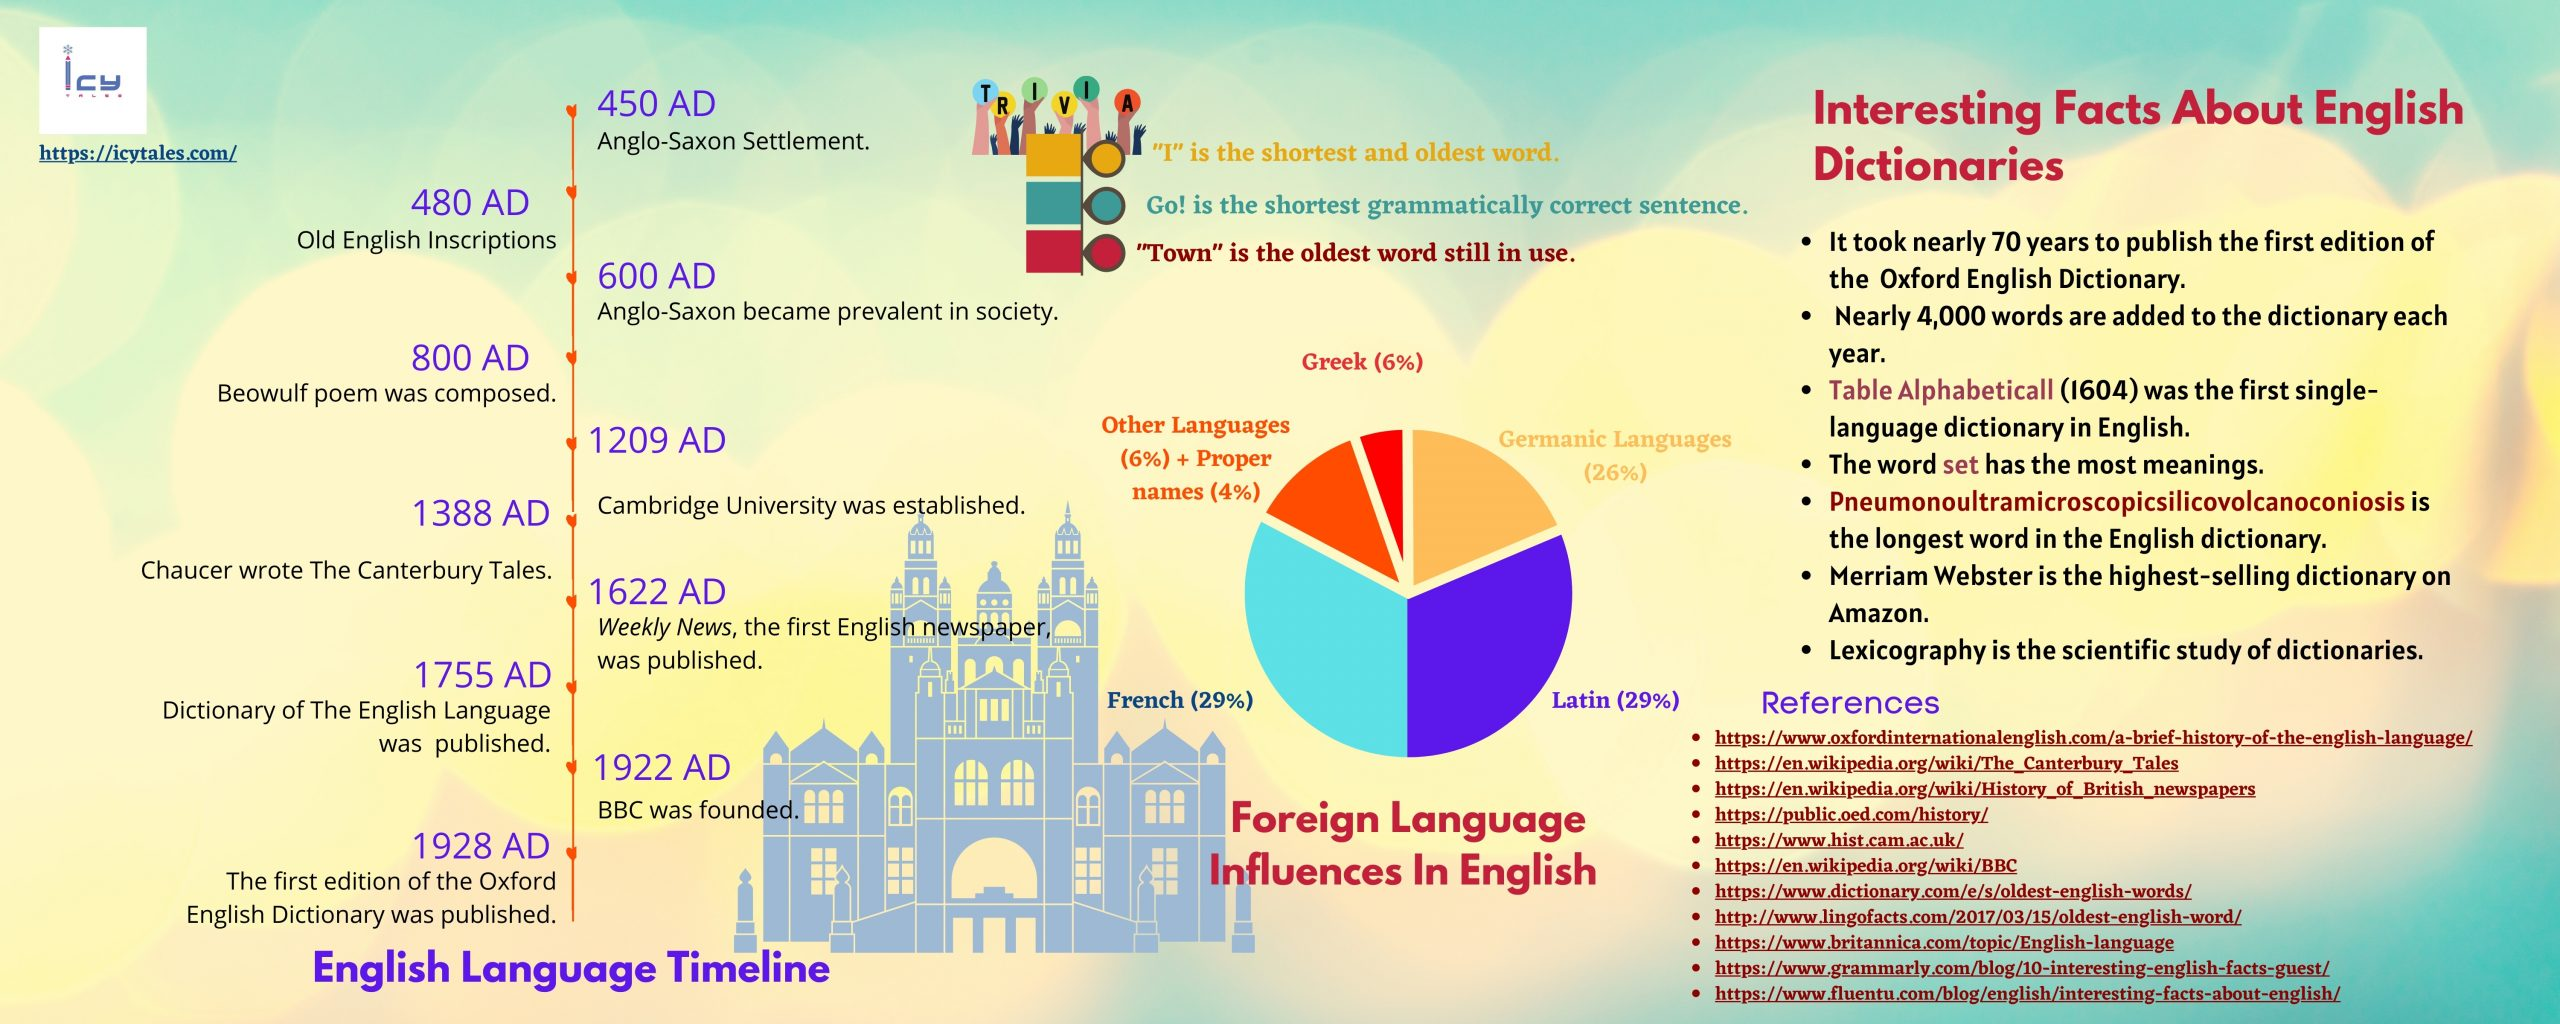 Interesting Facts About English